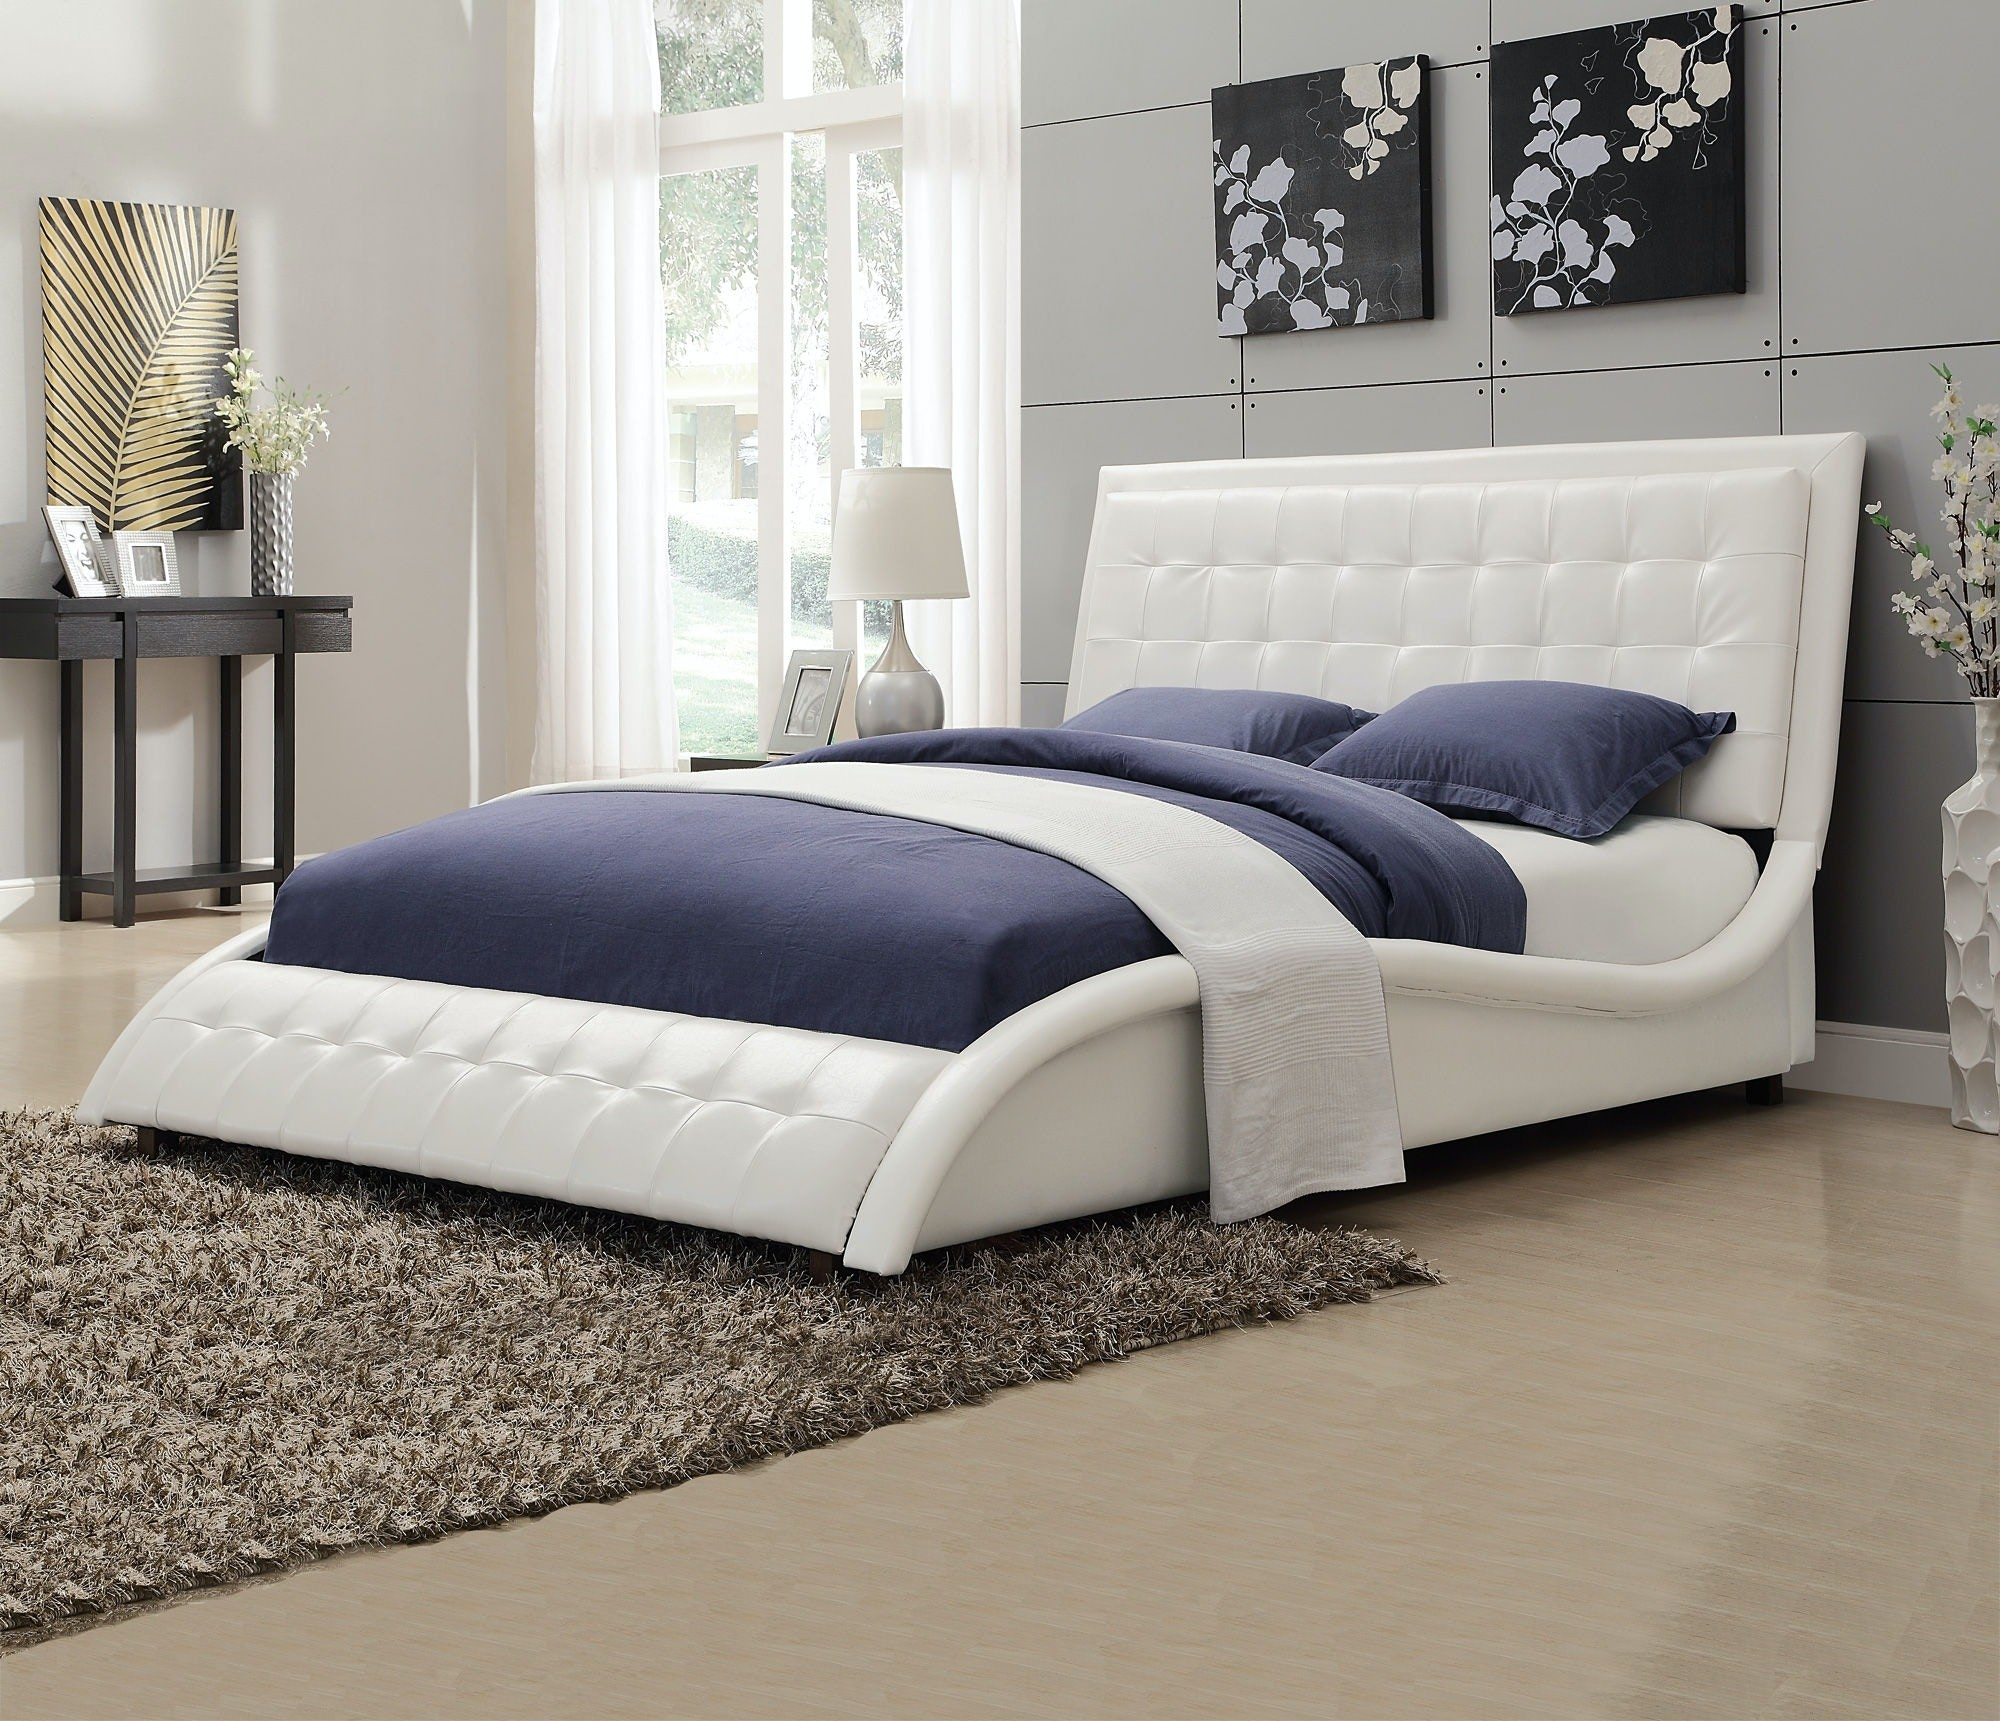 Queen Bed Frame.Low Profile Queen Bed Frame Ideas On Foter